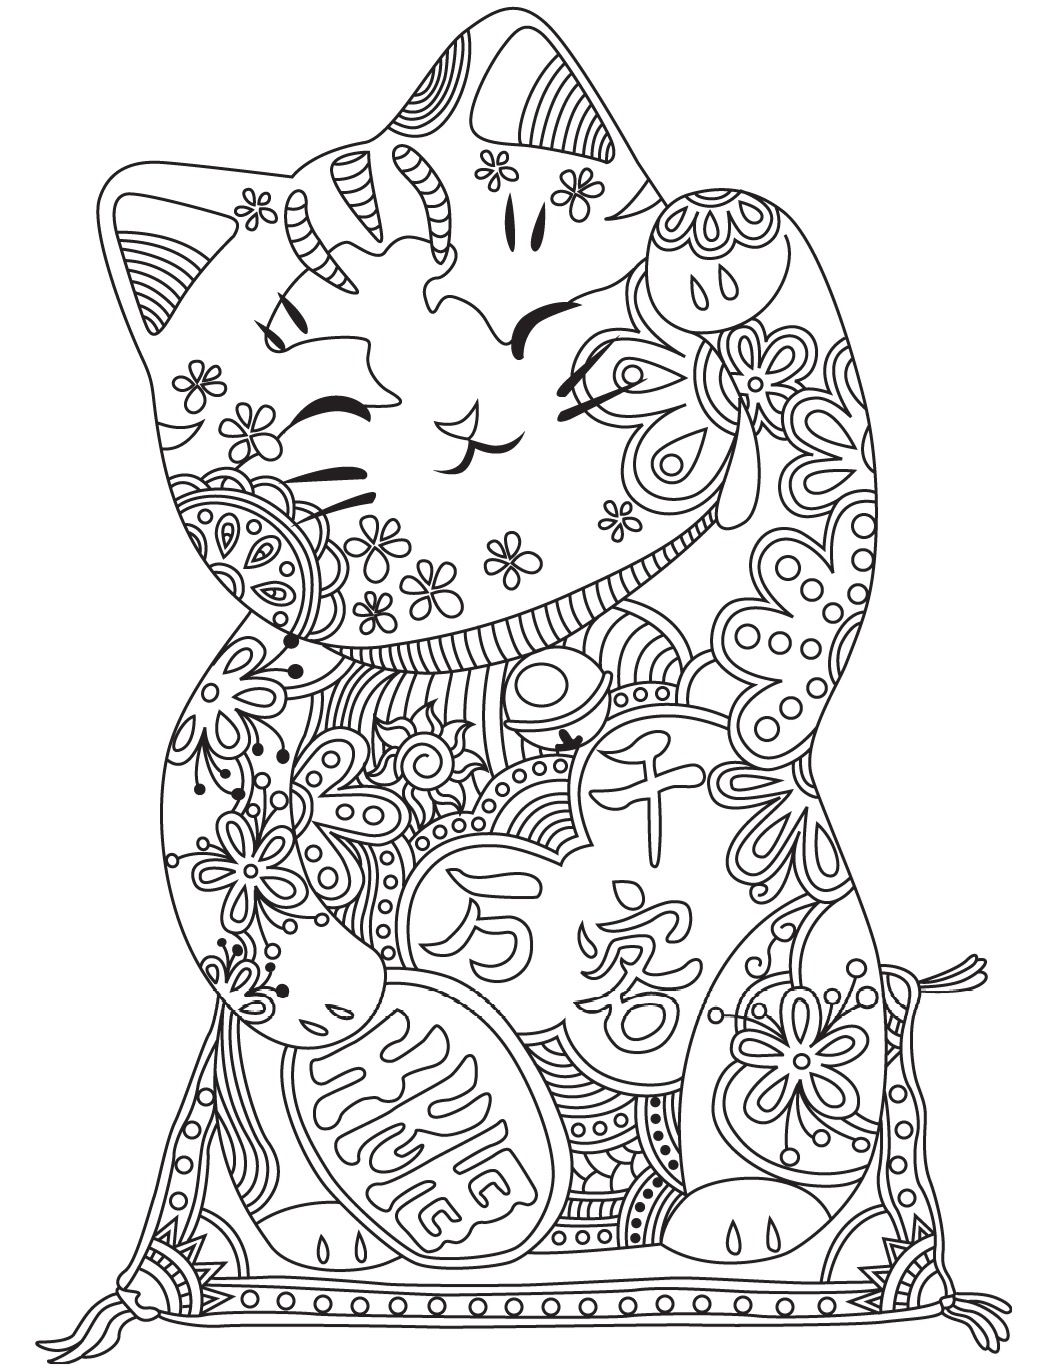 Japanese Cat | Colorish: coloring book for adults mandala relax by ...